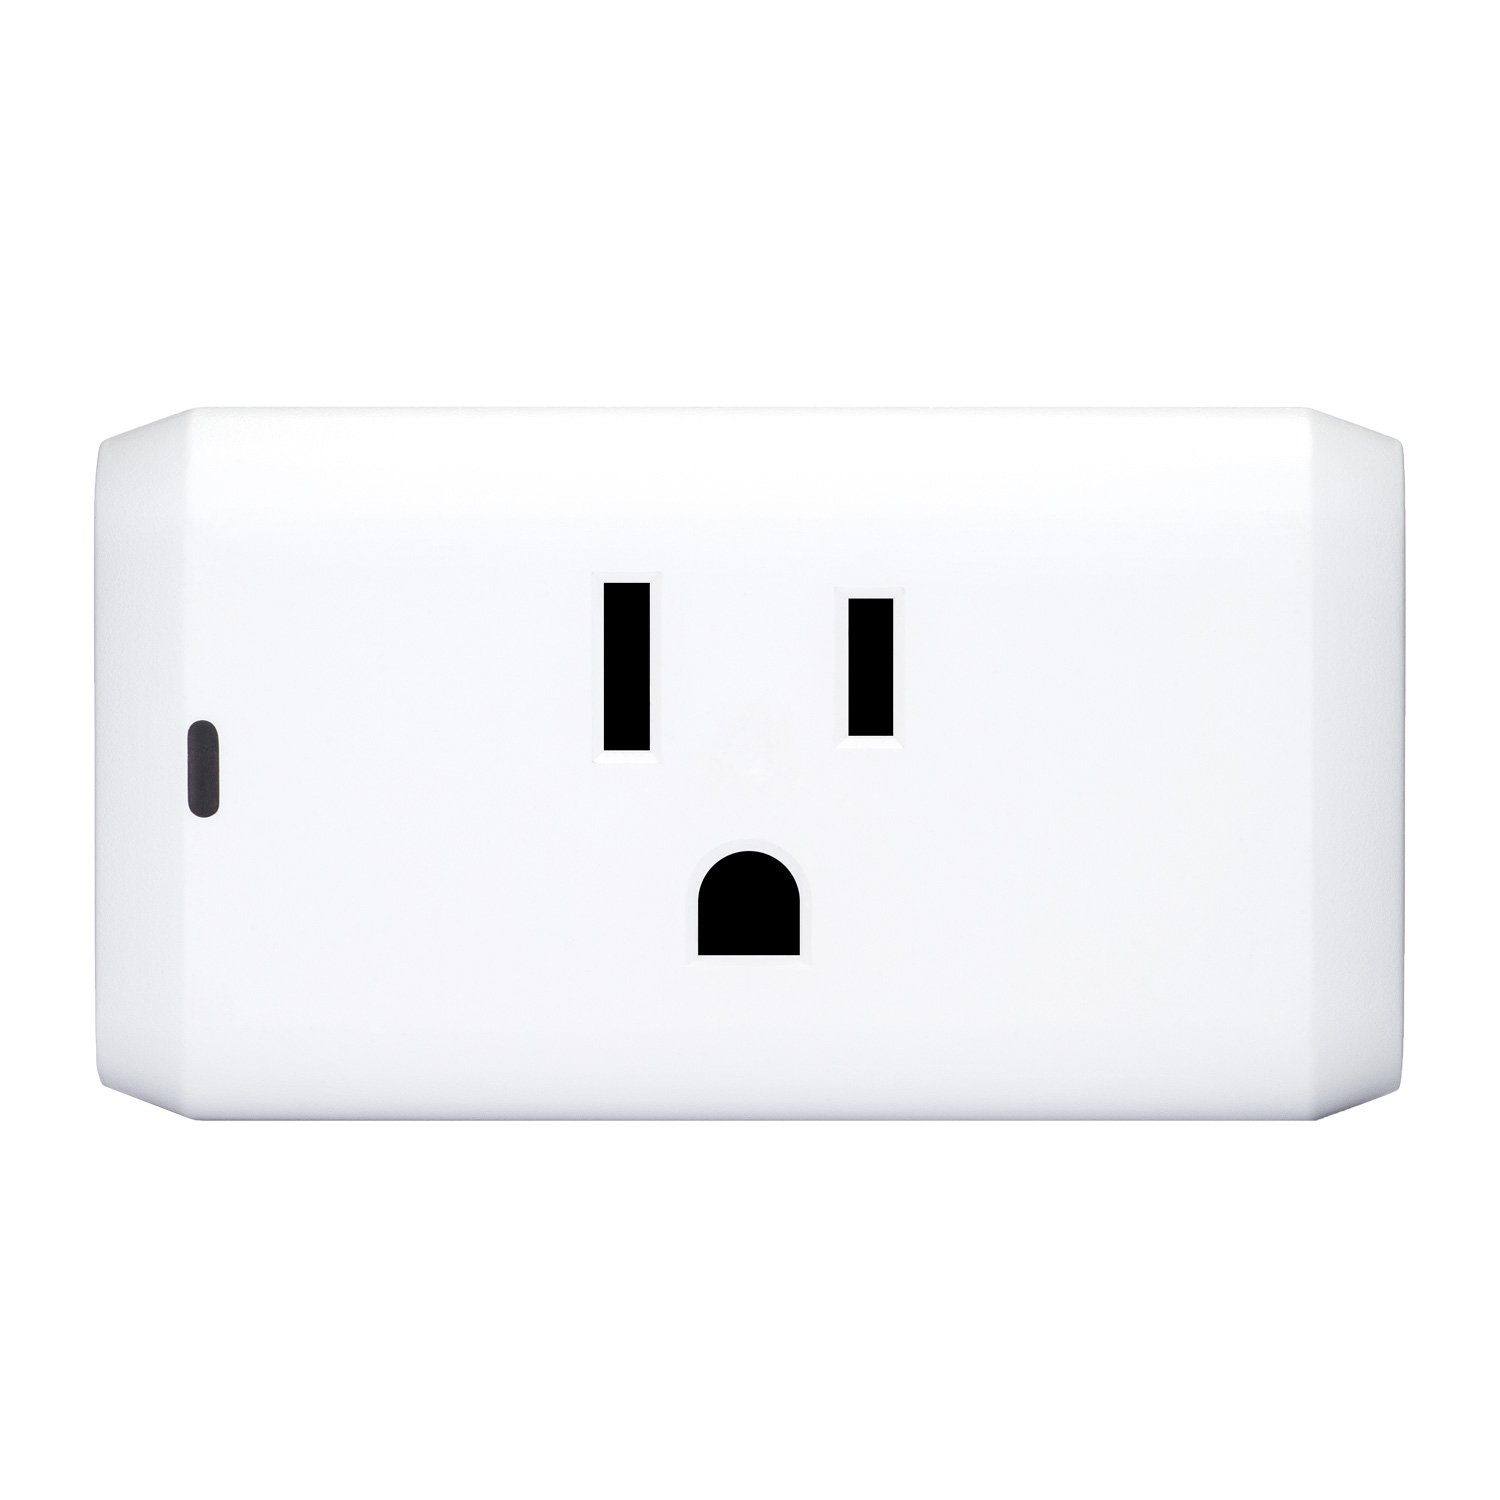 Centralite Smart Outlet (Works with Echo Plus and ZigBee platforms)